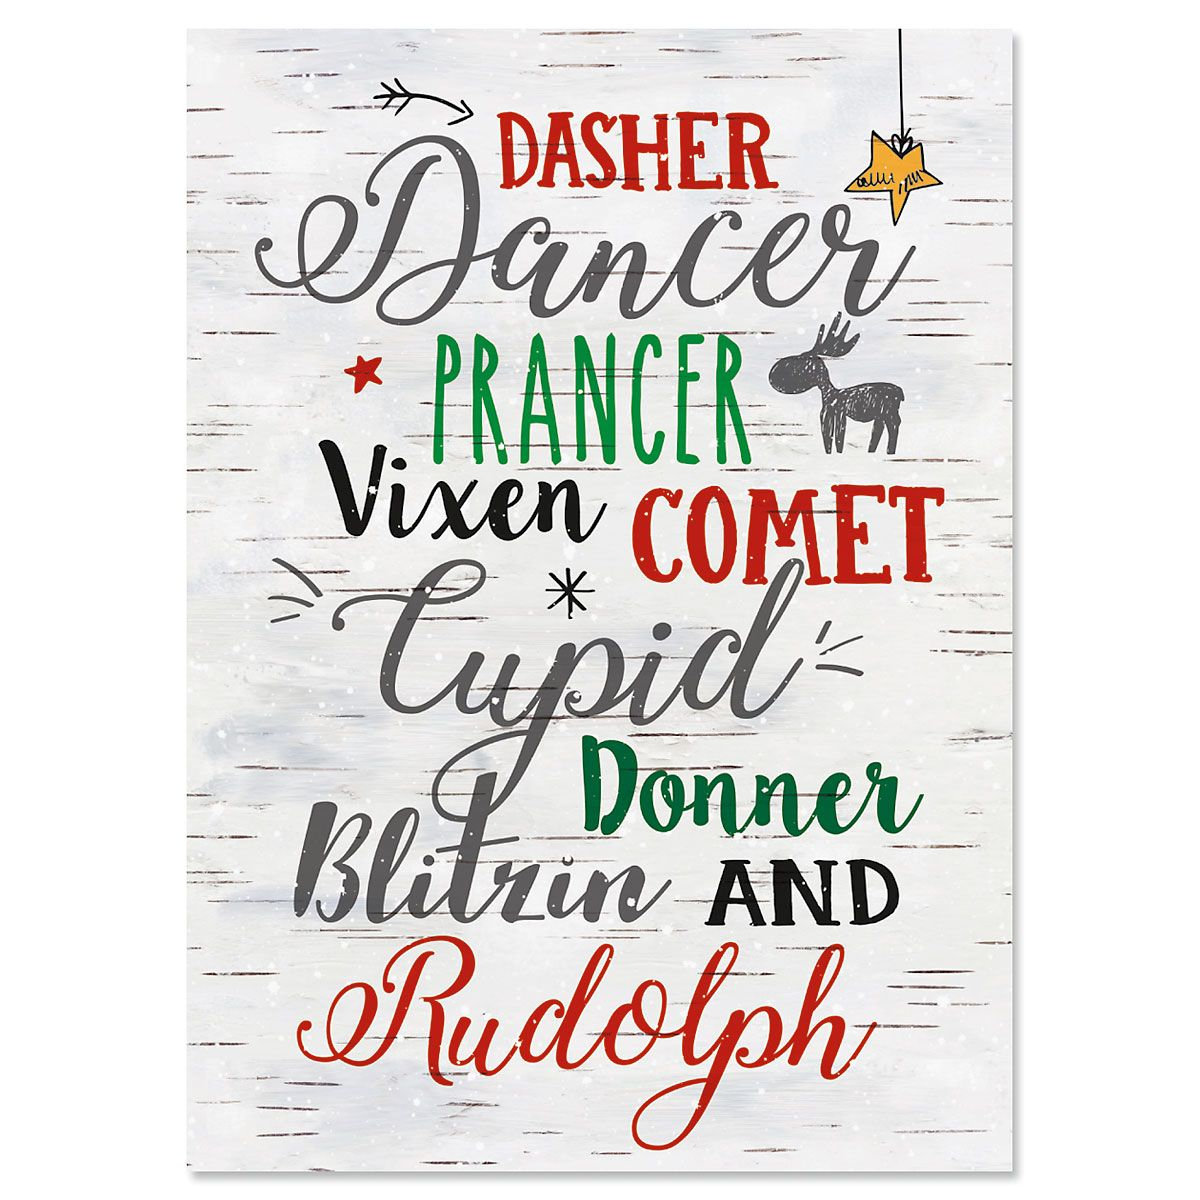 Reindeer Nonpersonalized Christmas Cards - Set of 18